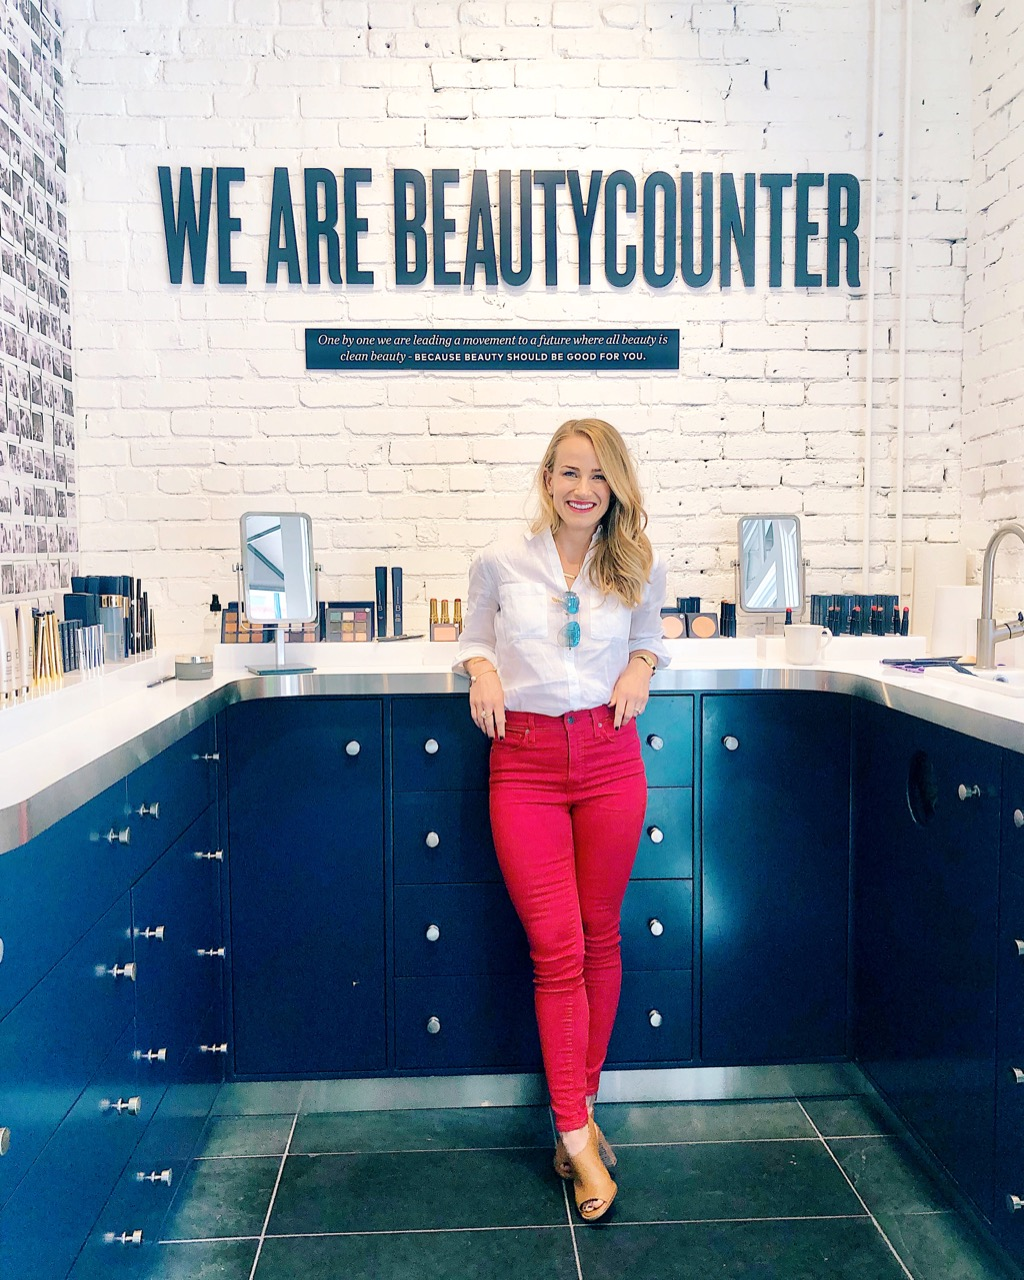 Beautycounter Compensation Plan Explained